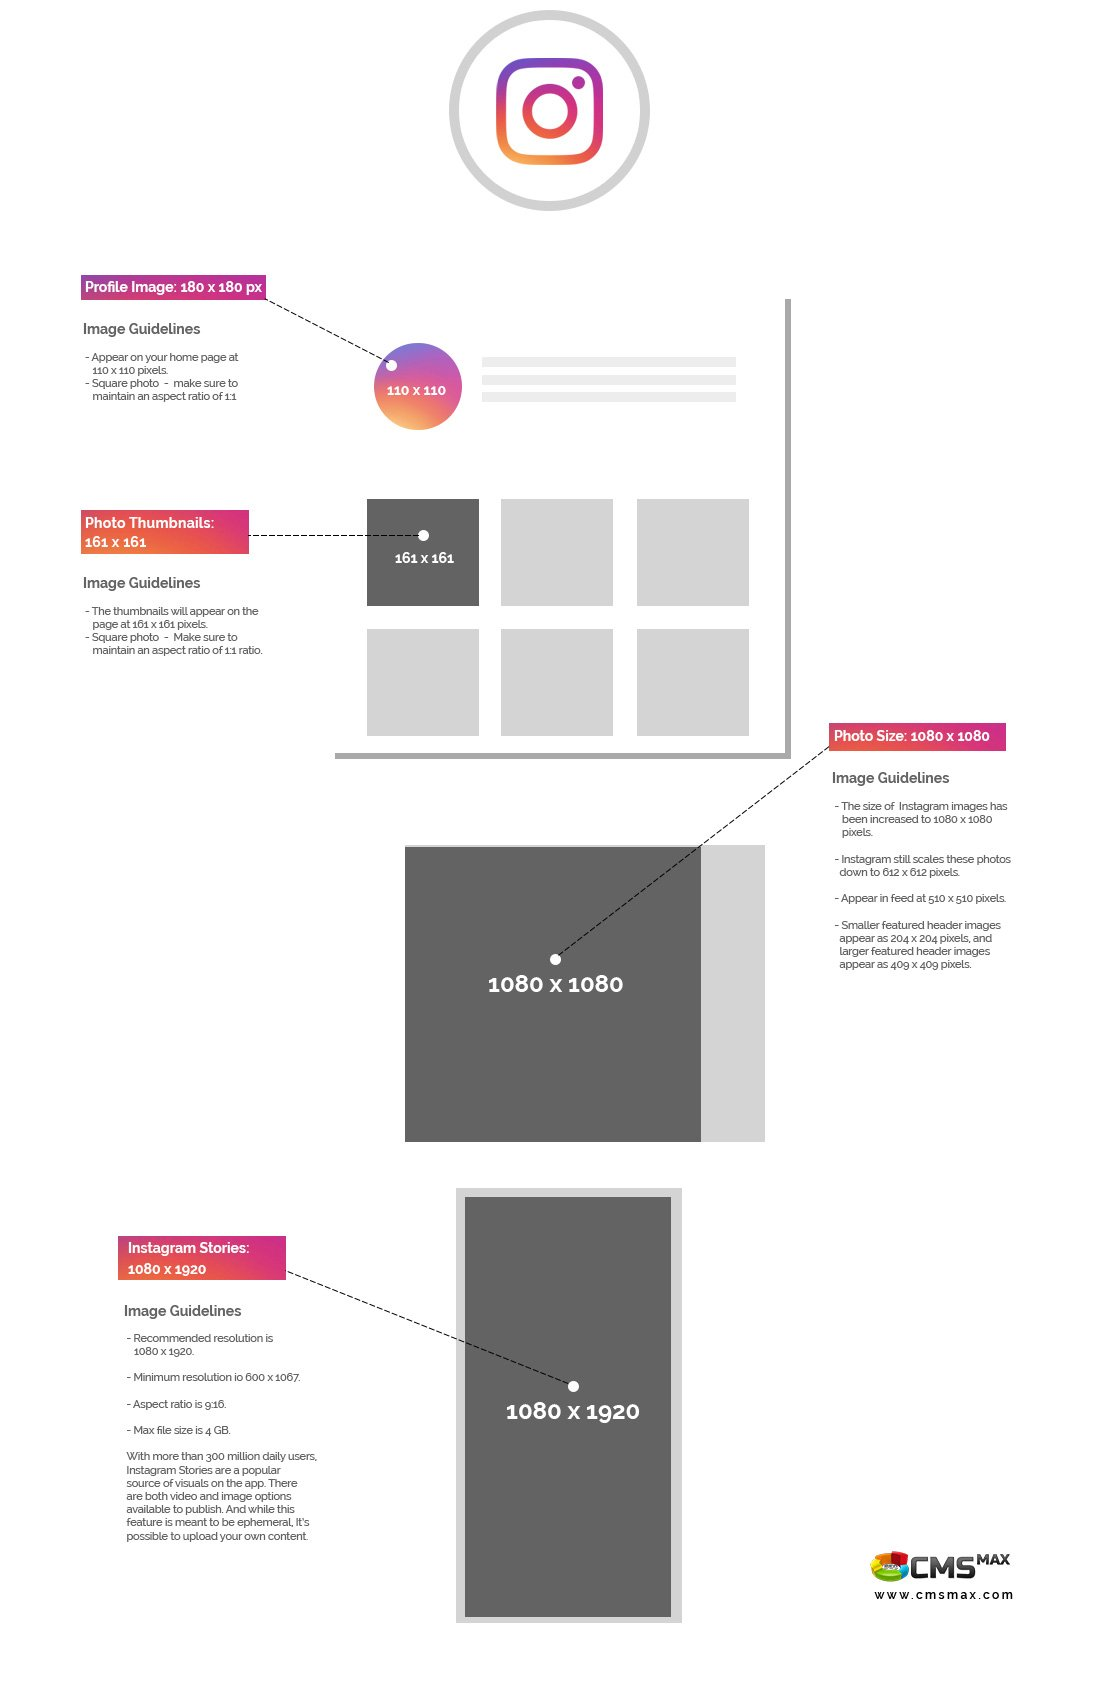 Instagram Design Sizes